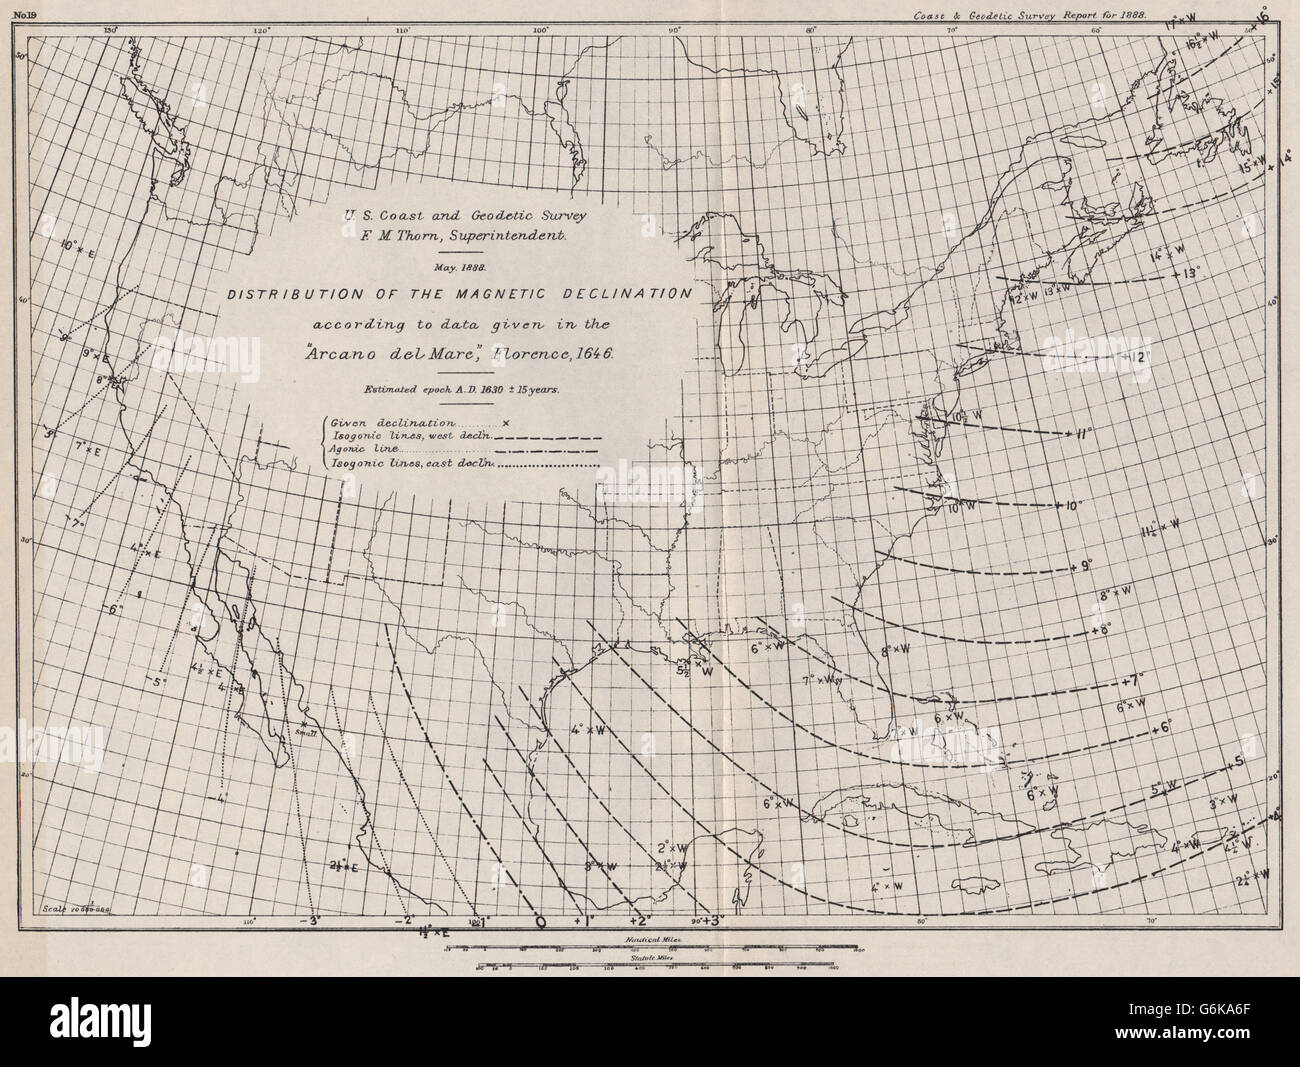 usa magnetic declination 1630 arcano del mare isogonic lines uscgs 1889